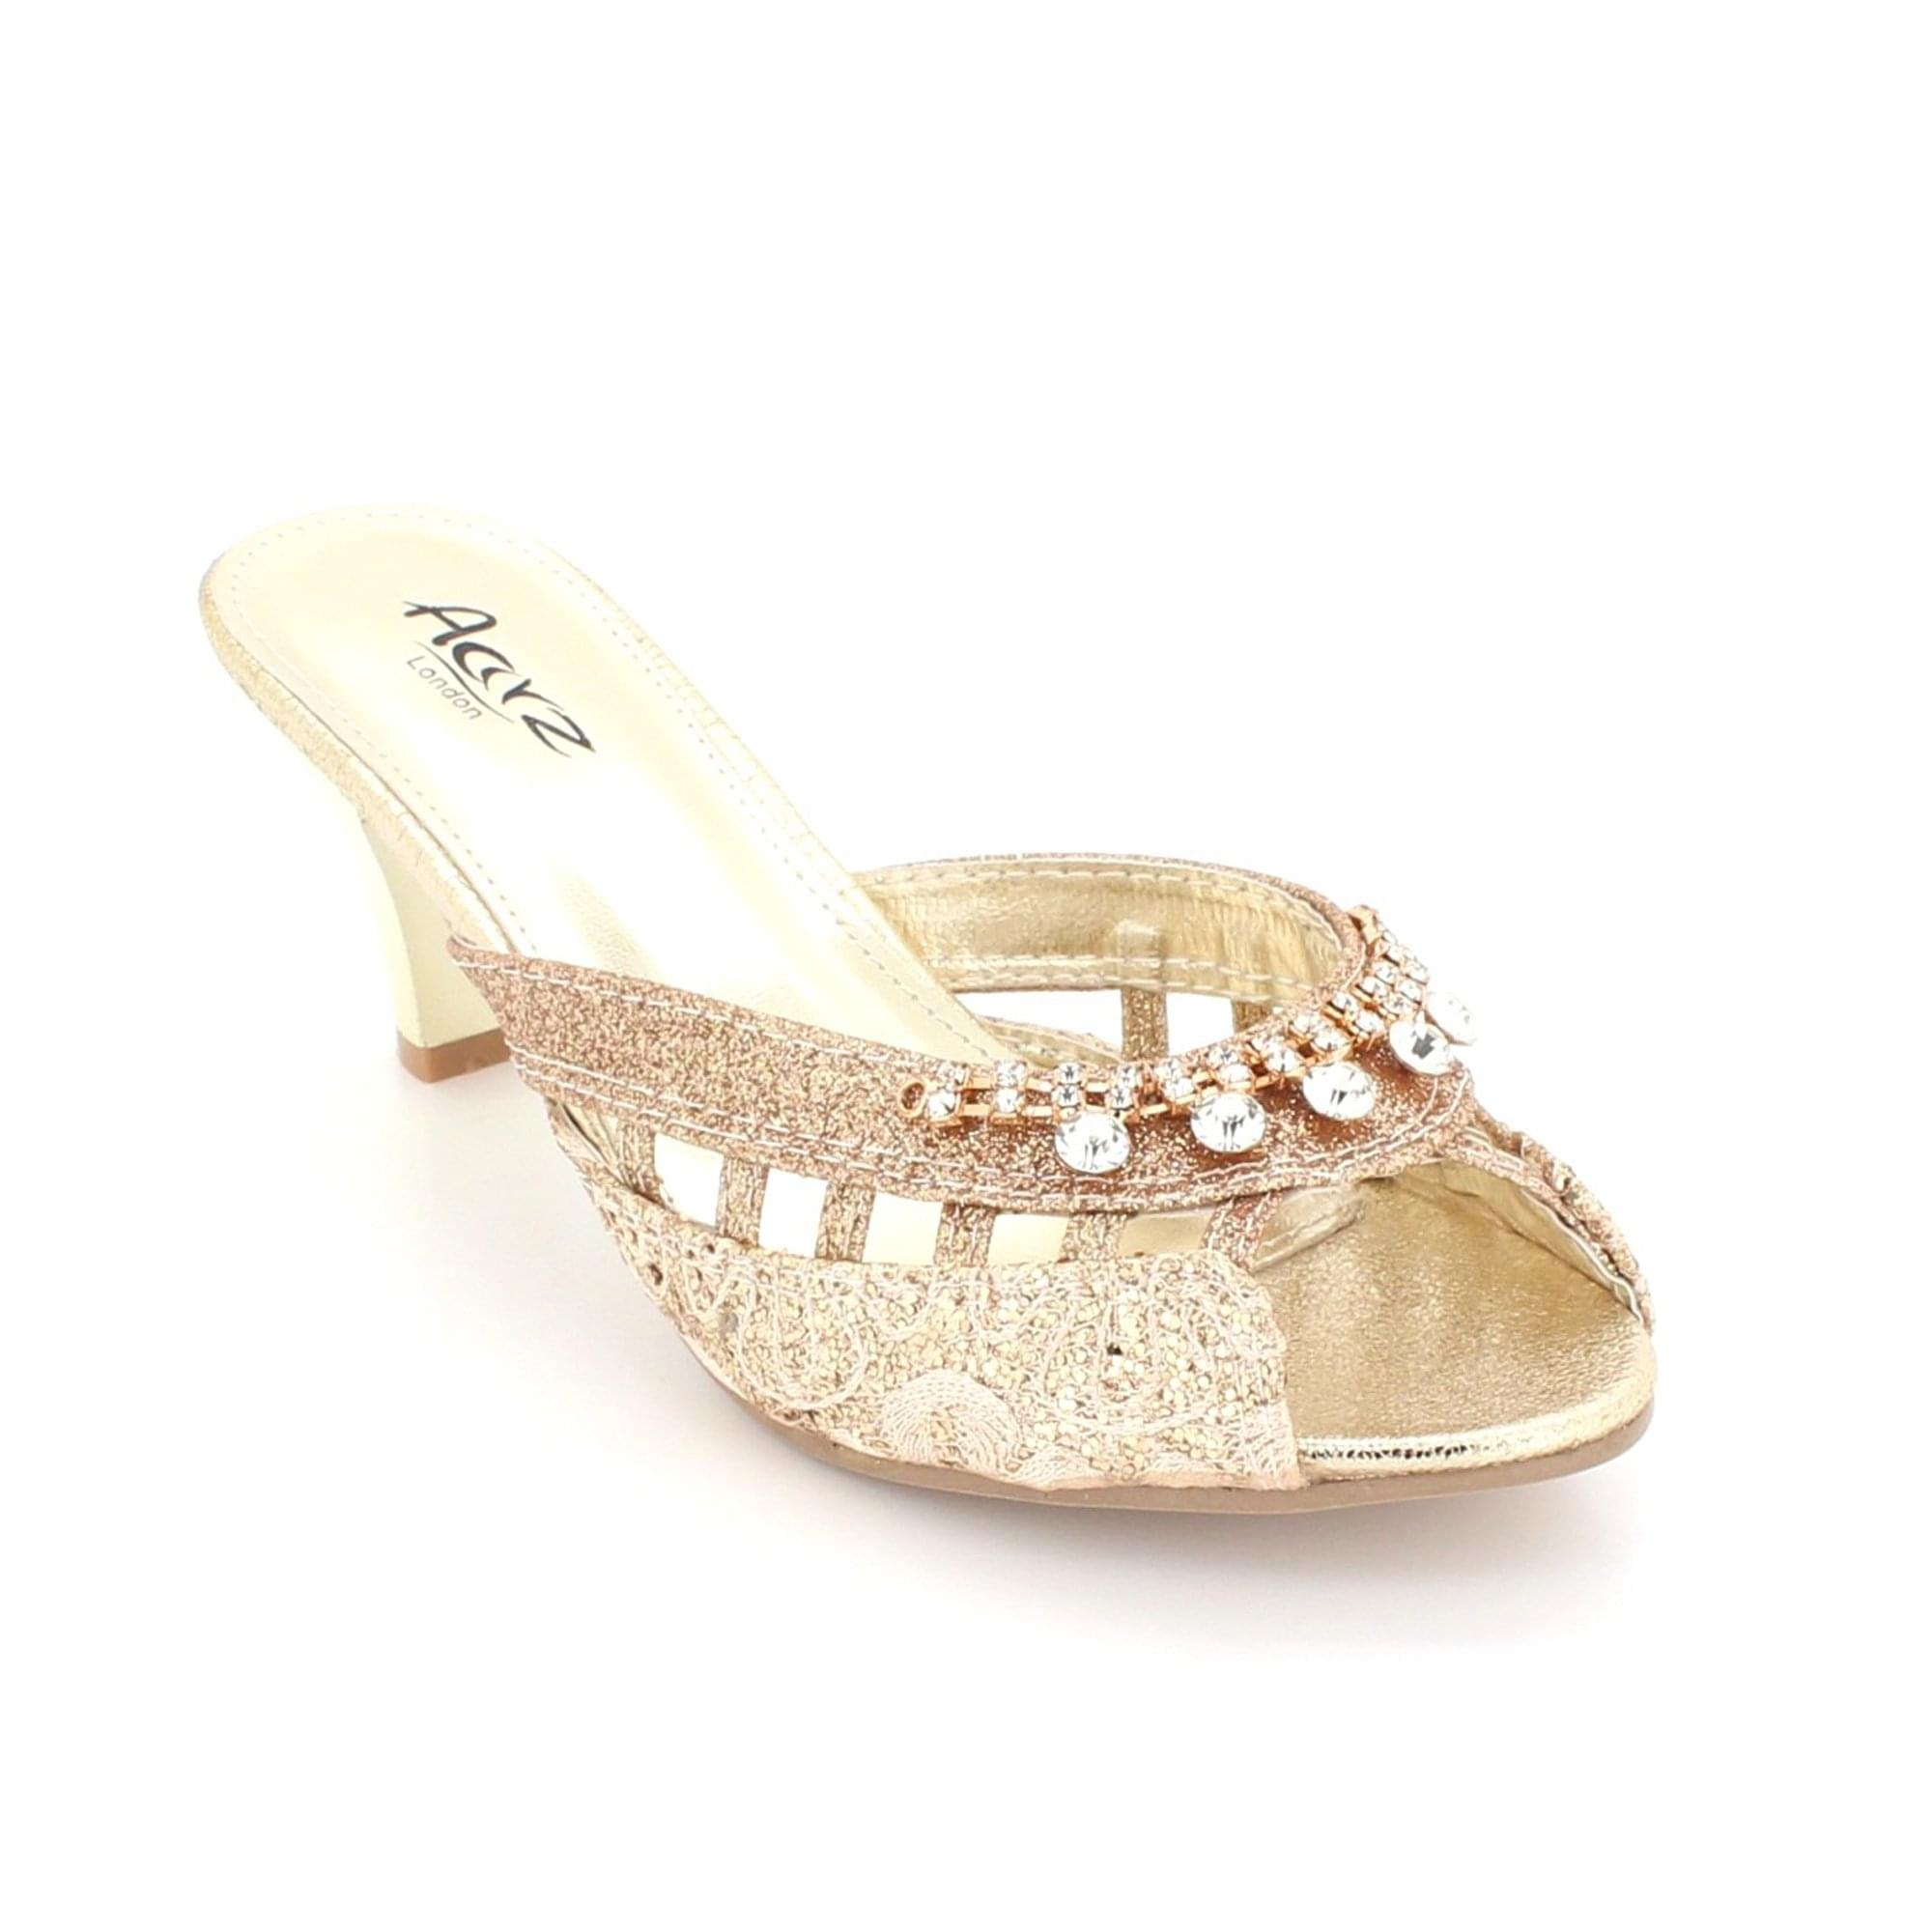 9ae51481958 Aarz London Effie- Lace Decorated Sandal